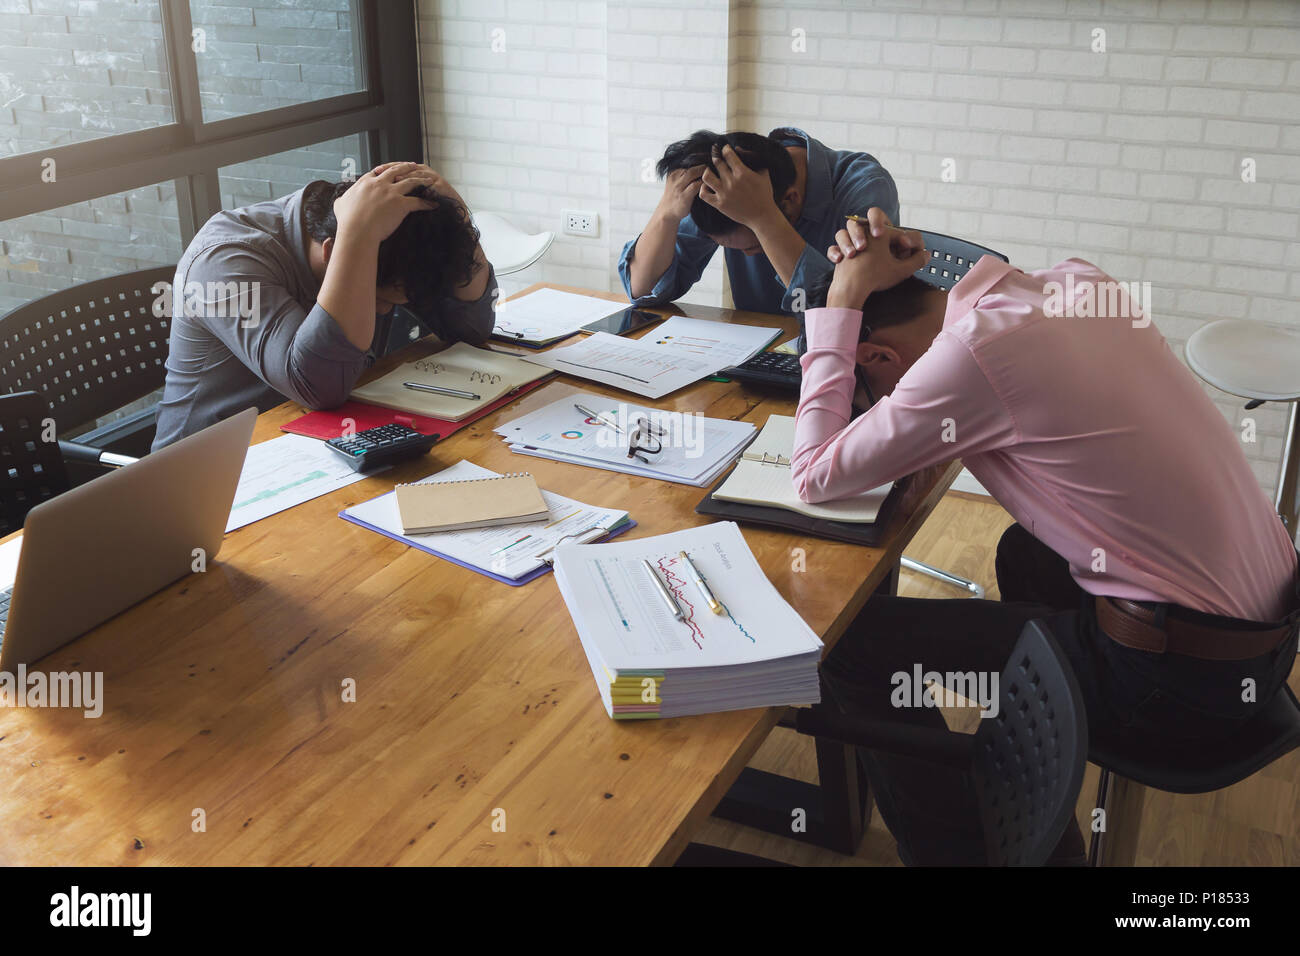 Business and finance concept of office working,Businessmen tried from working hard  and stress with new project missing deadline office - Stock Image